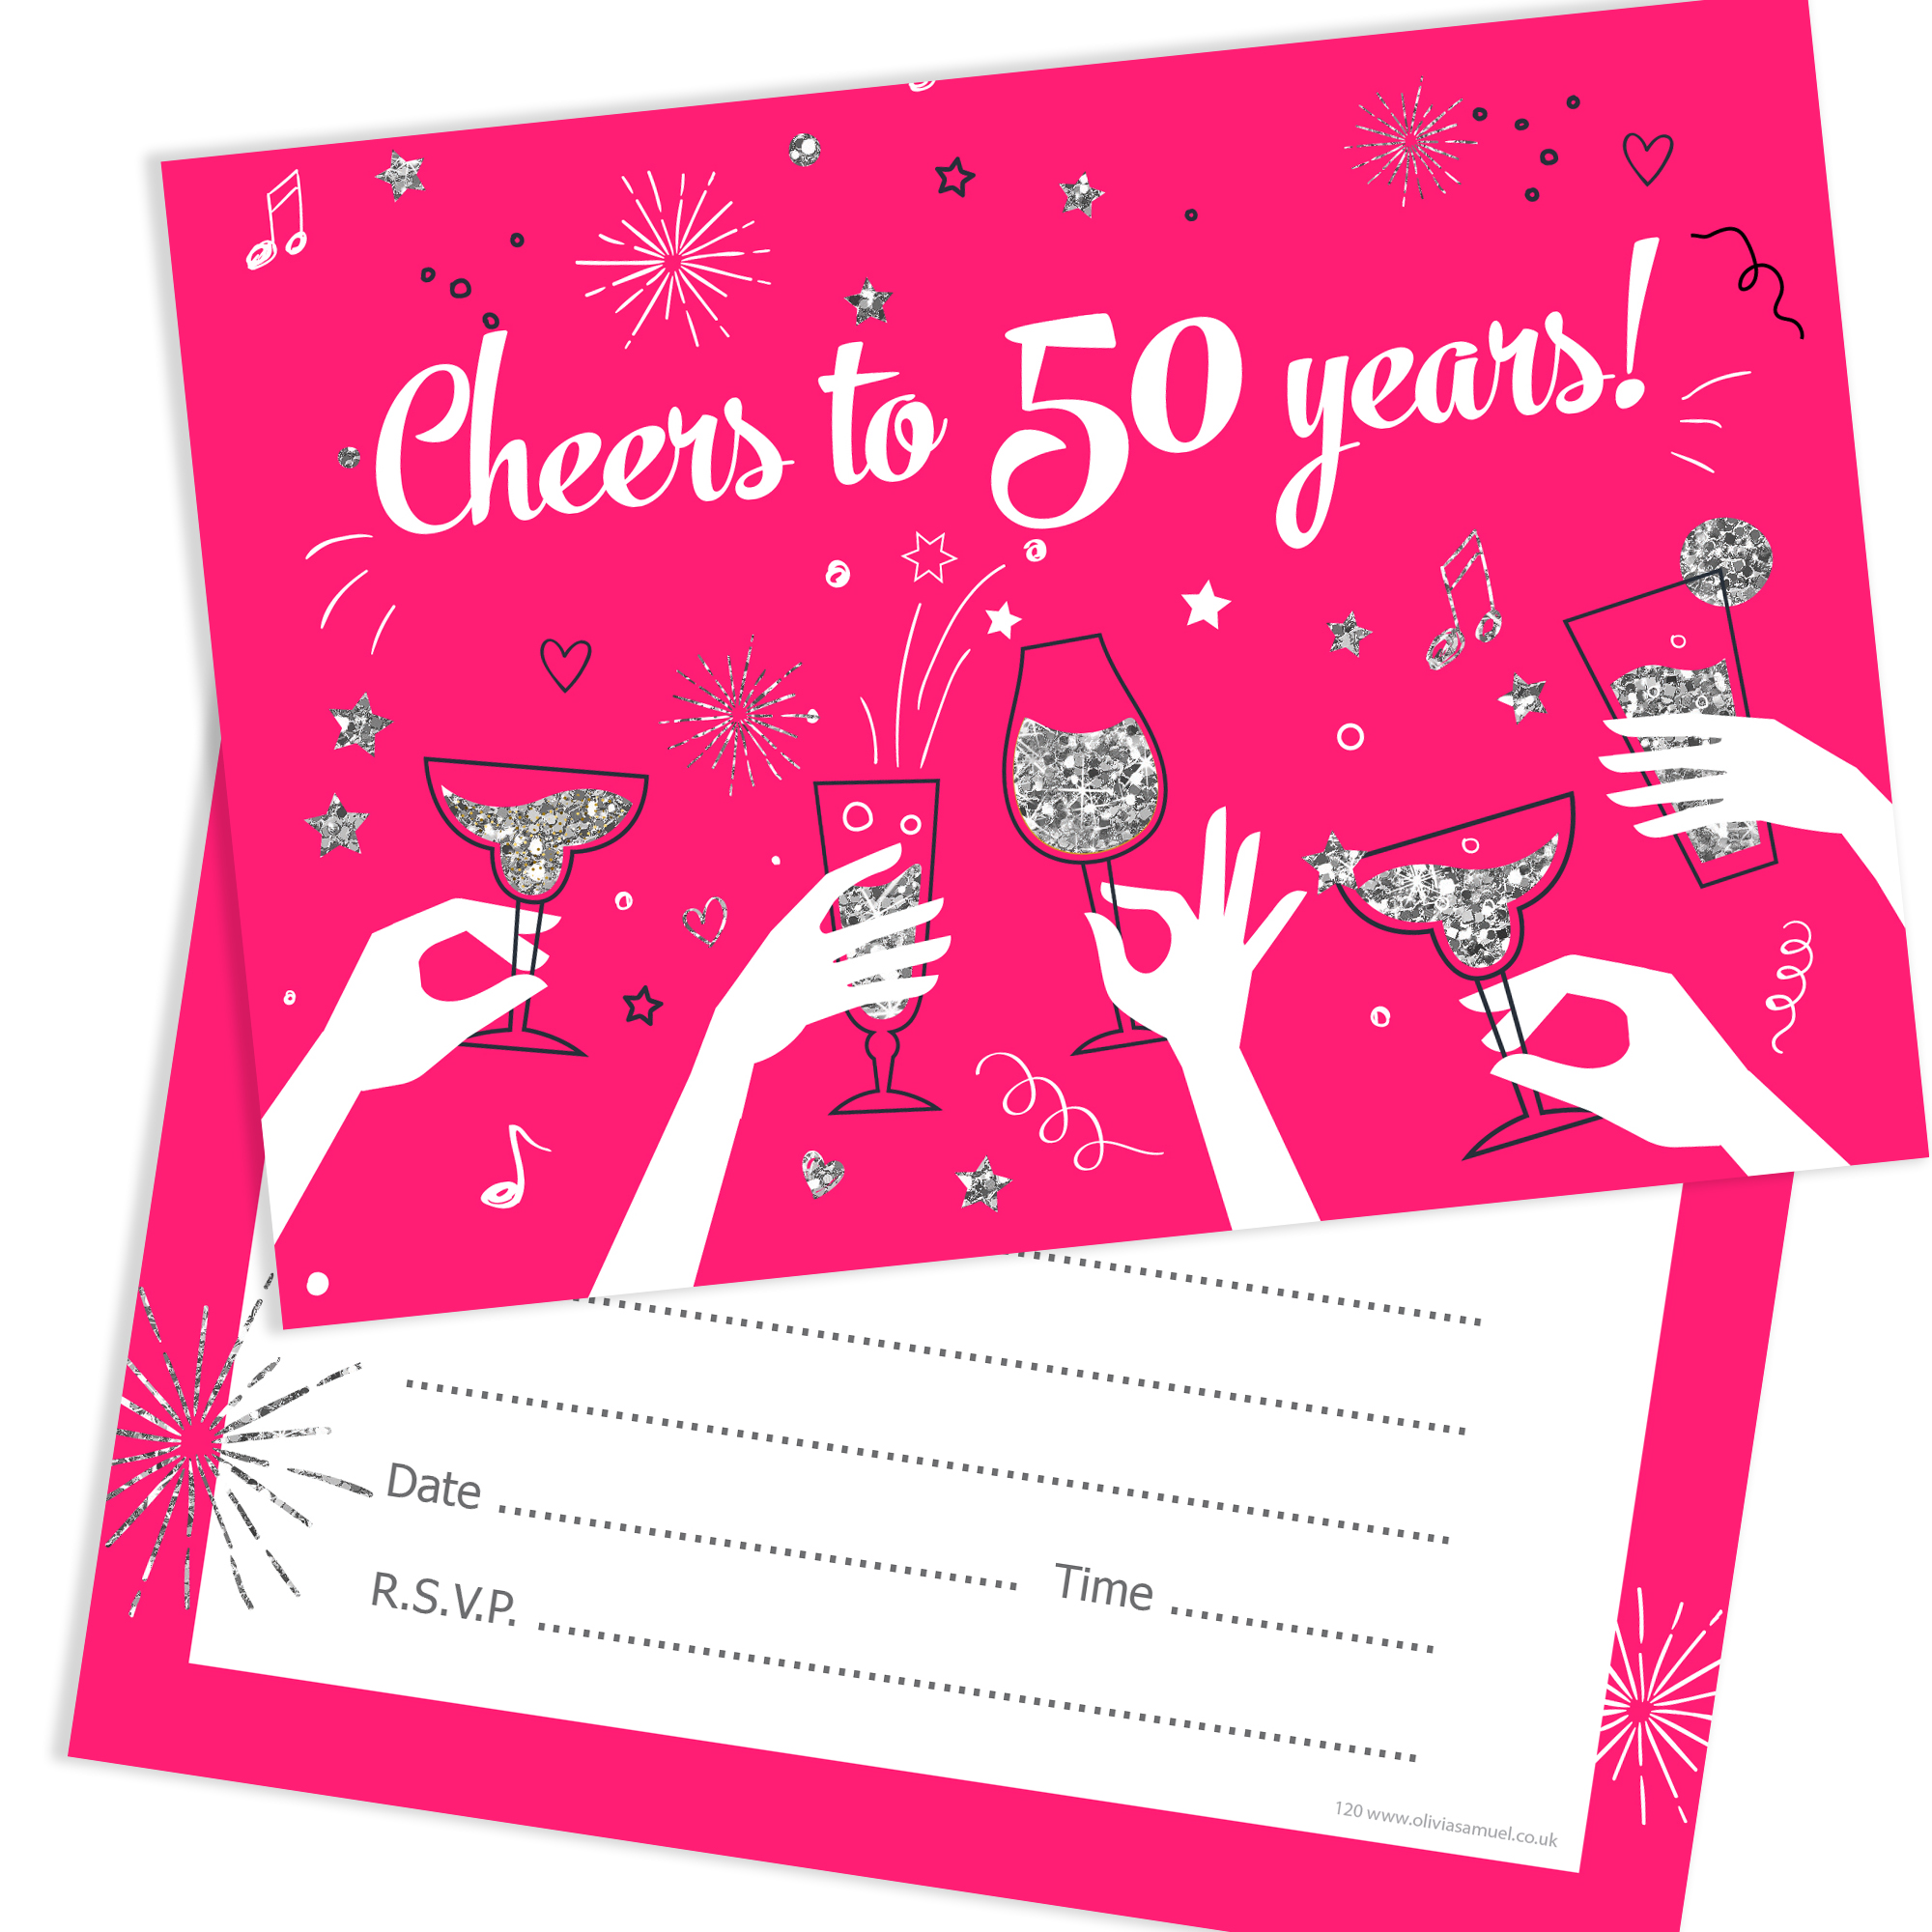 50th Birthday Party Invitations Cheers To 50 Years Ladies Pack 10